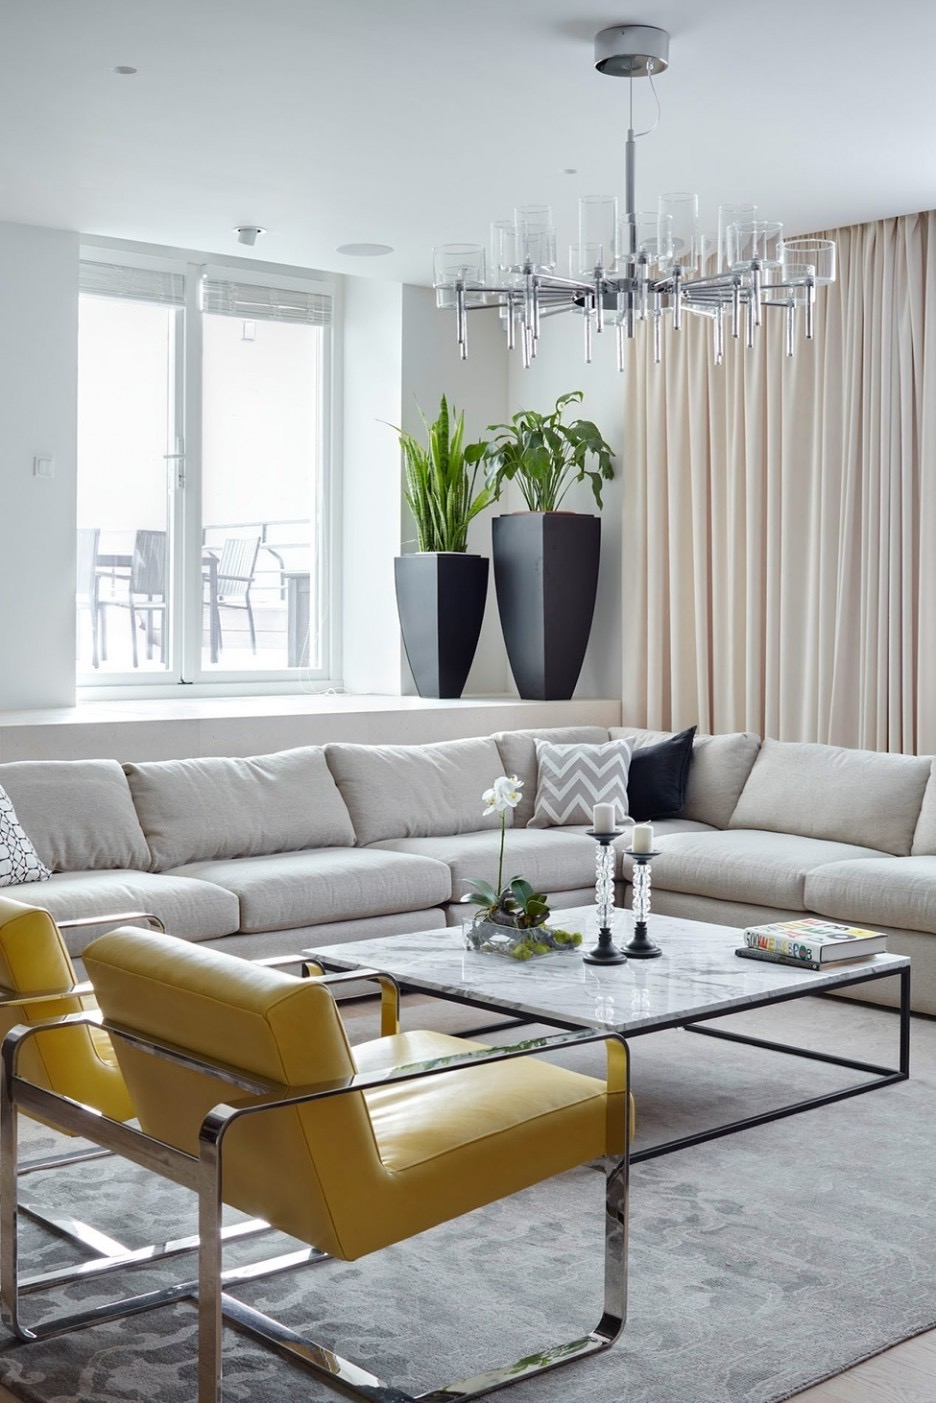 Stylish Crystal Chandelier For Minimalist Living Room (Image 16 of 18)